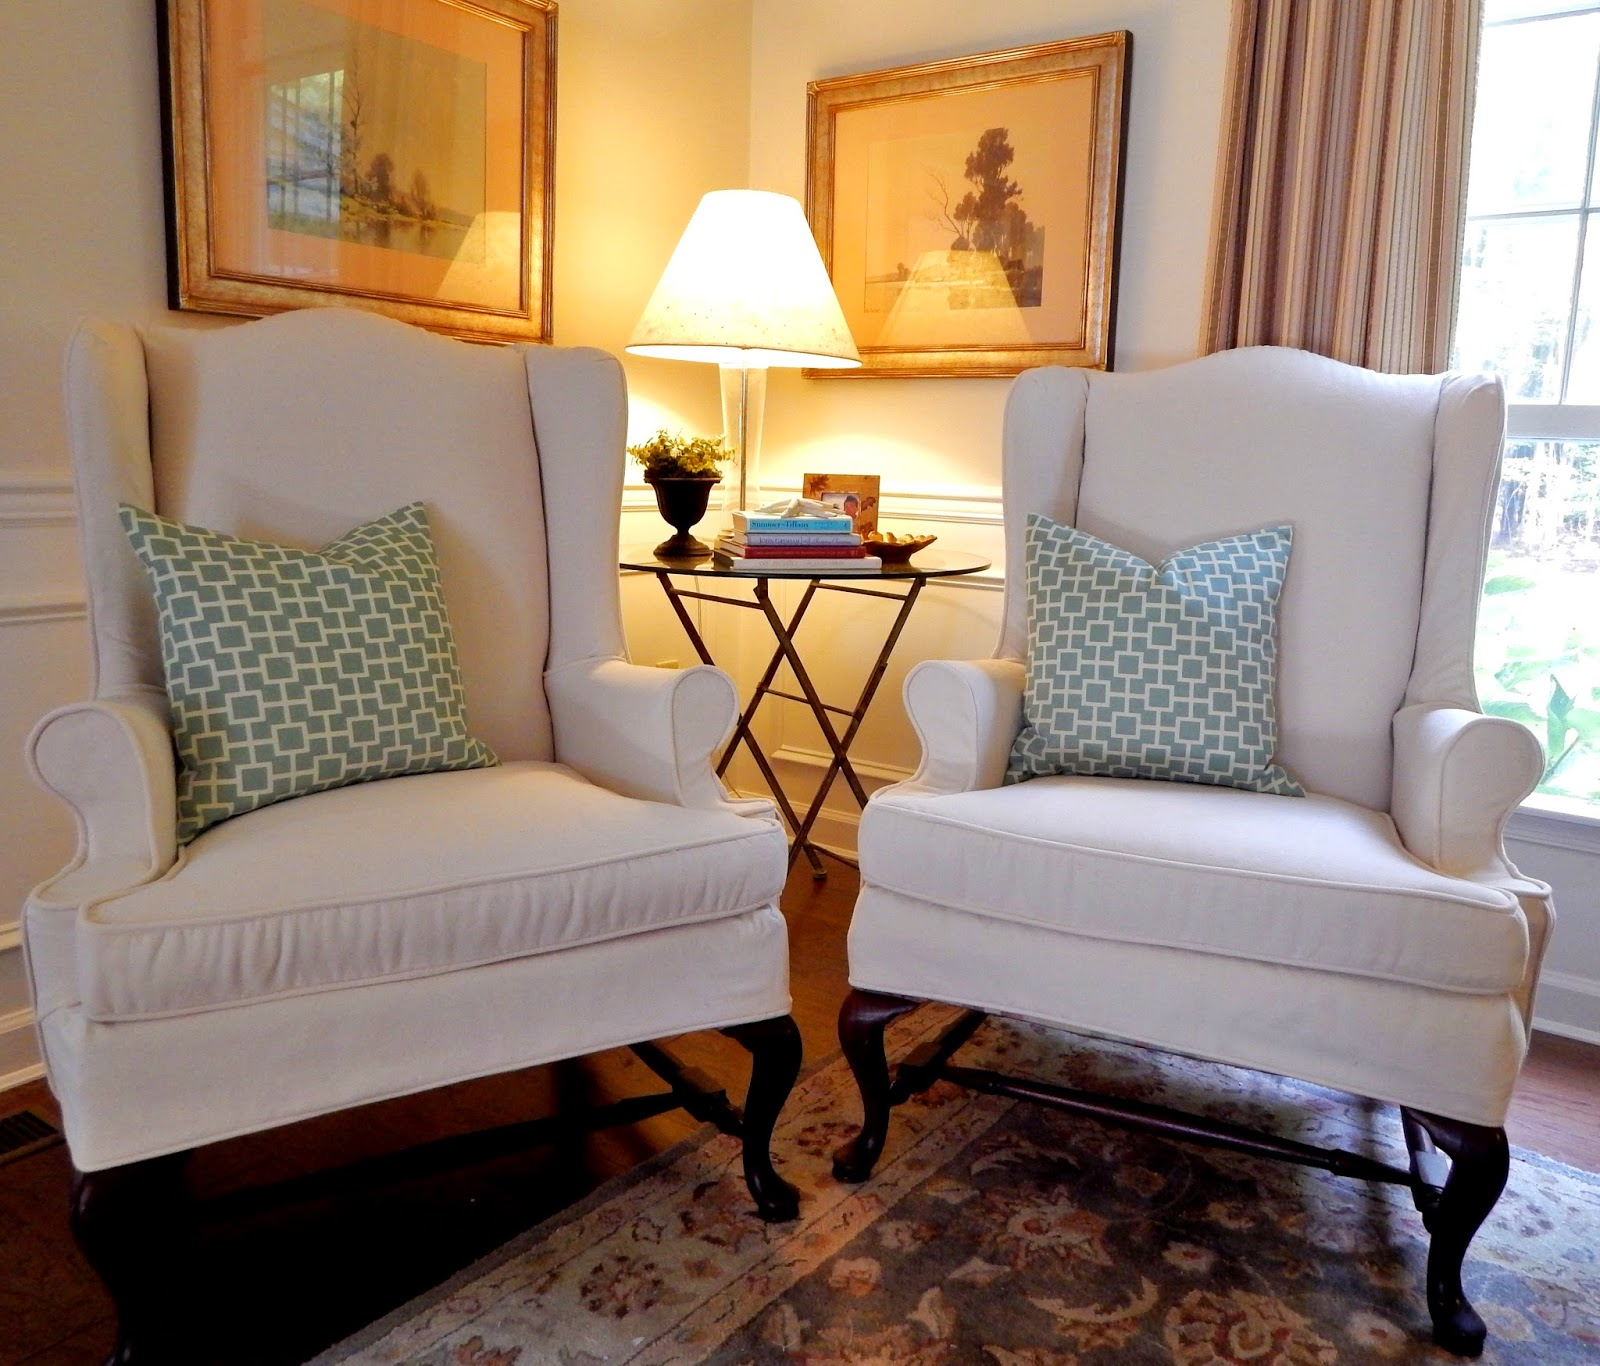 Pottery Barn Slipcovers: Pam Morris Sews: Pottery Barn Brushed Canvas On Wing Chairs